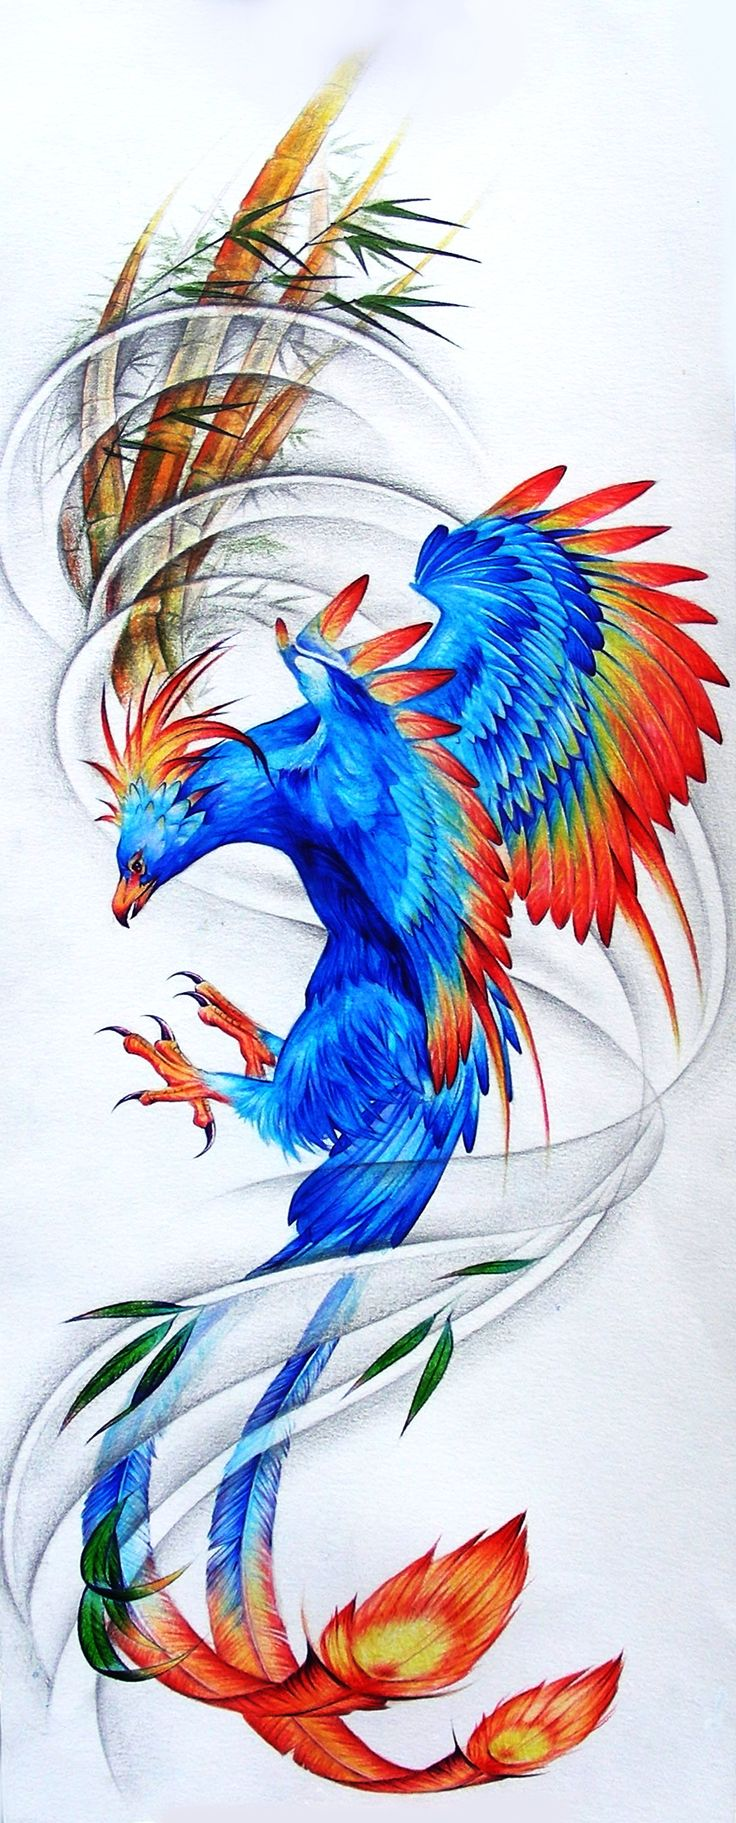 Phoenix by Coconut-CocaCola.deviantart.com on @DeviantArt